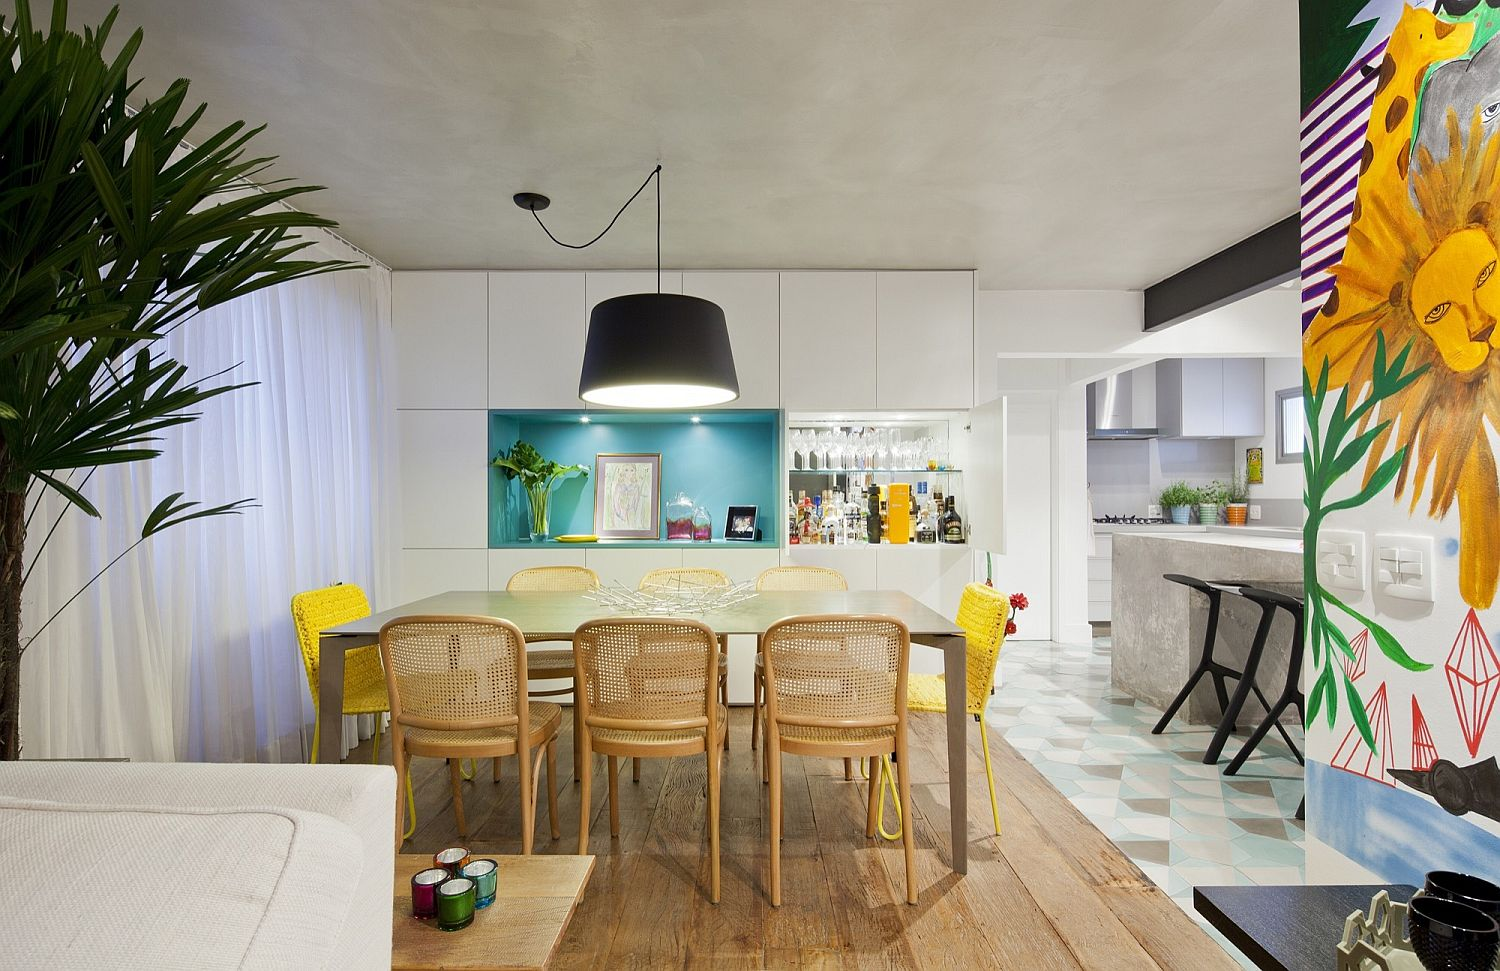 Reclaimed wood adds warmth to the modern Brazilian apartment